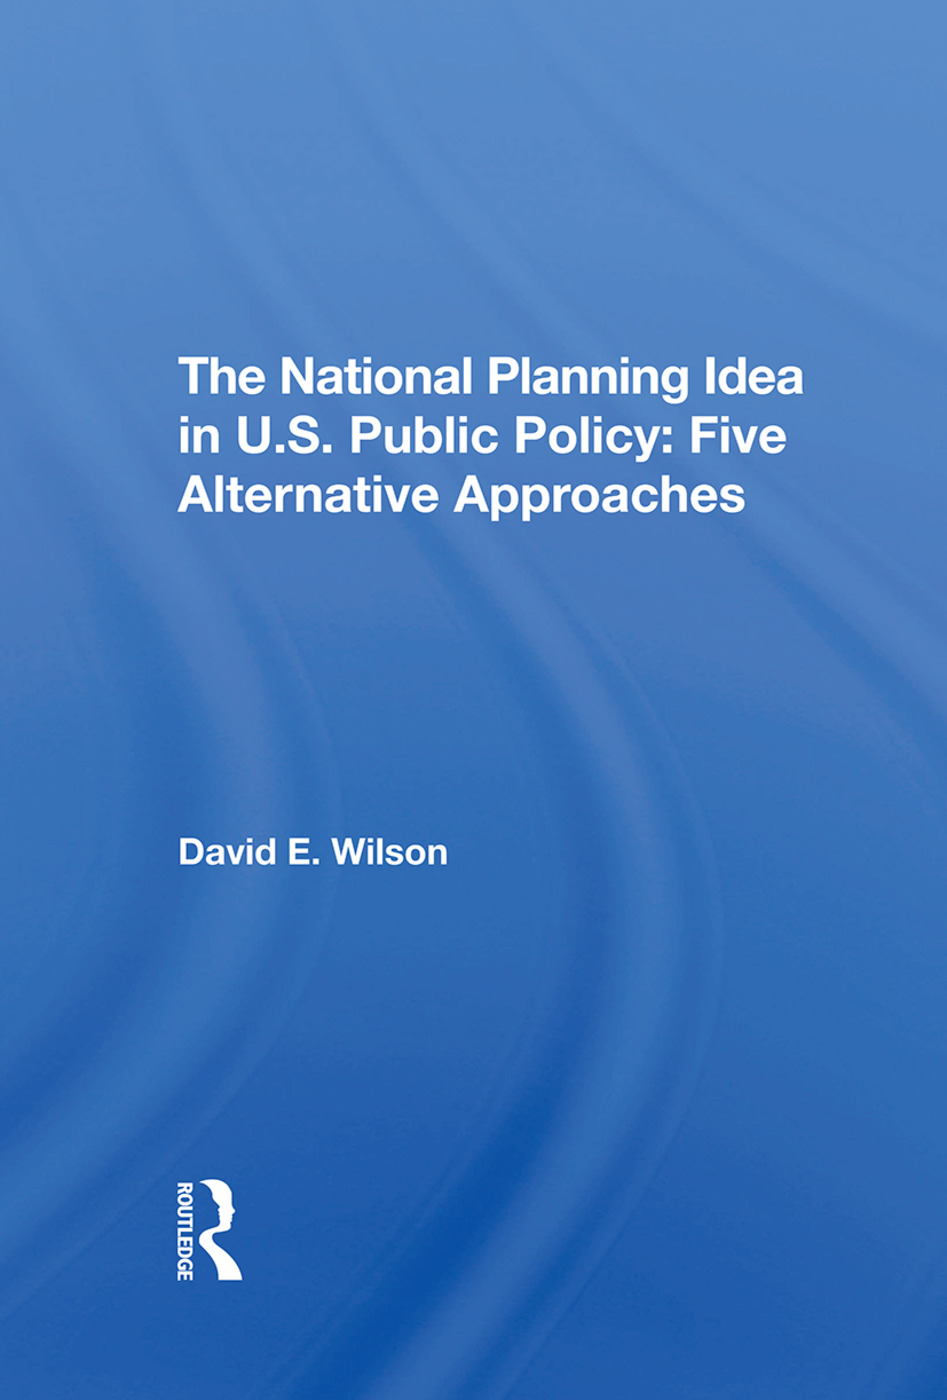 The Framework Applied: The Growth and Resource National Planning Debates, 1973-1976